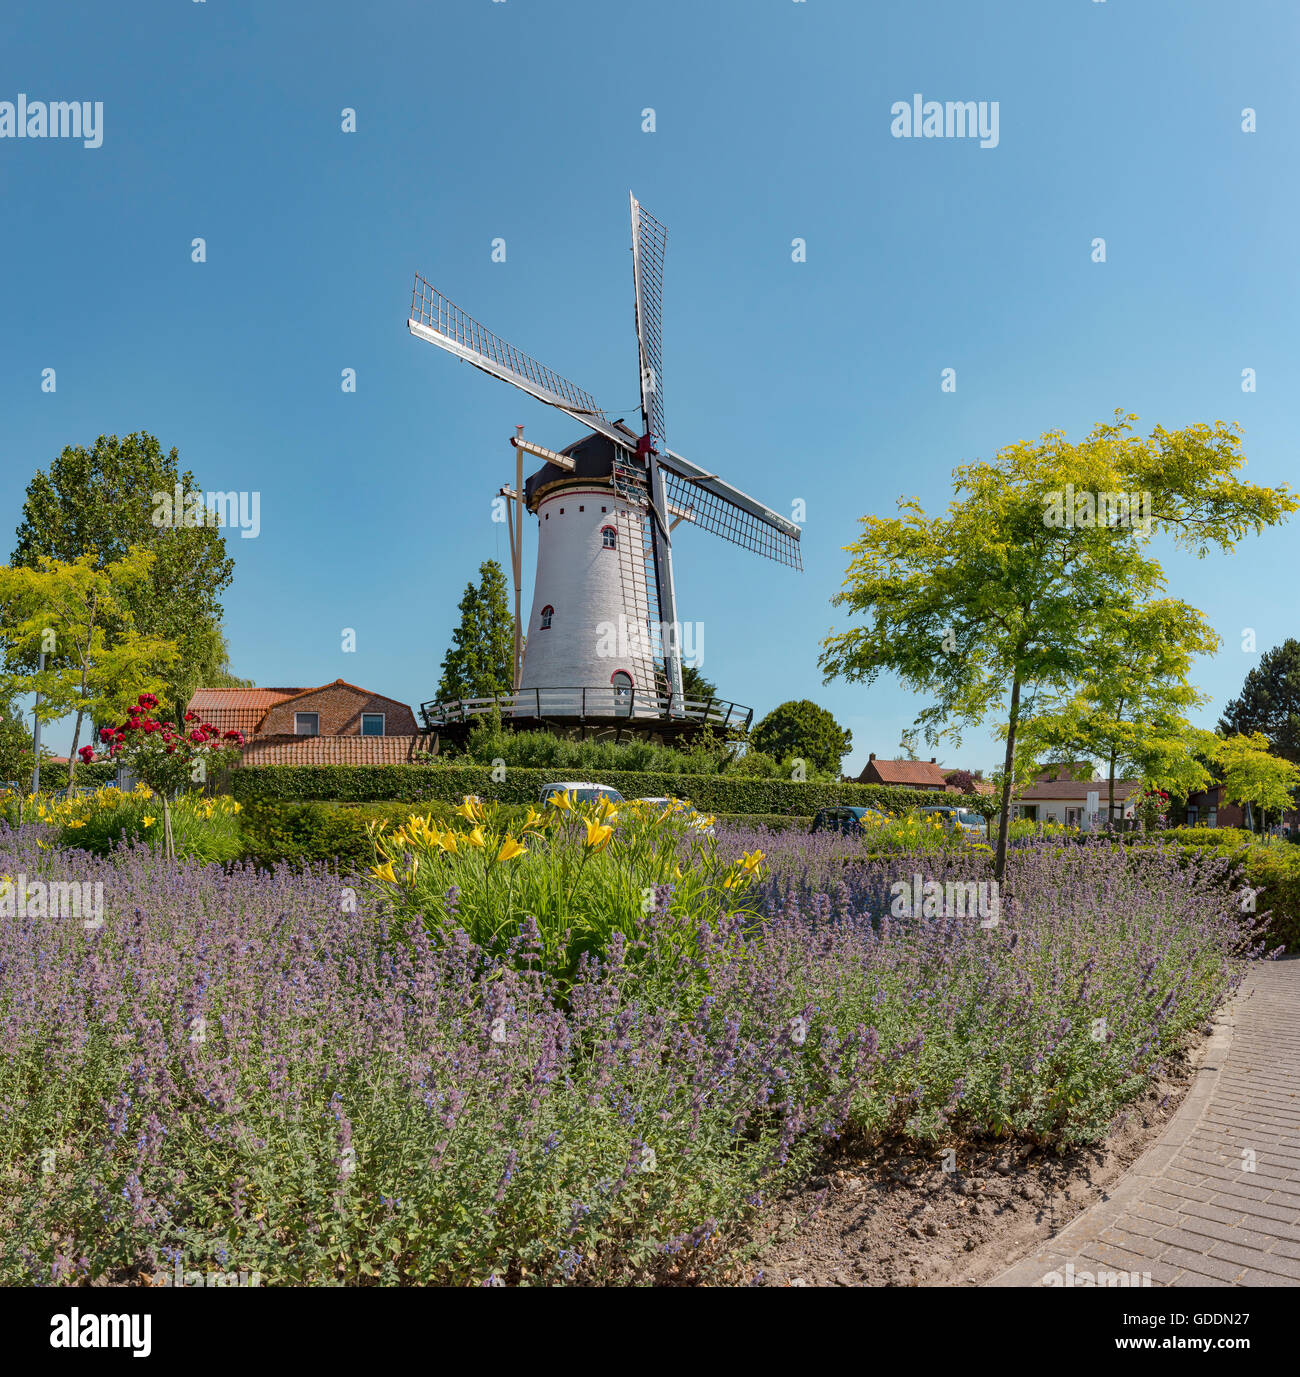 Sint-Annaland,Zeeland,White stone tower mill The Four Winds - Stock Image